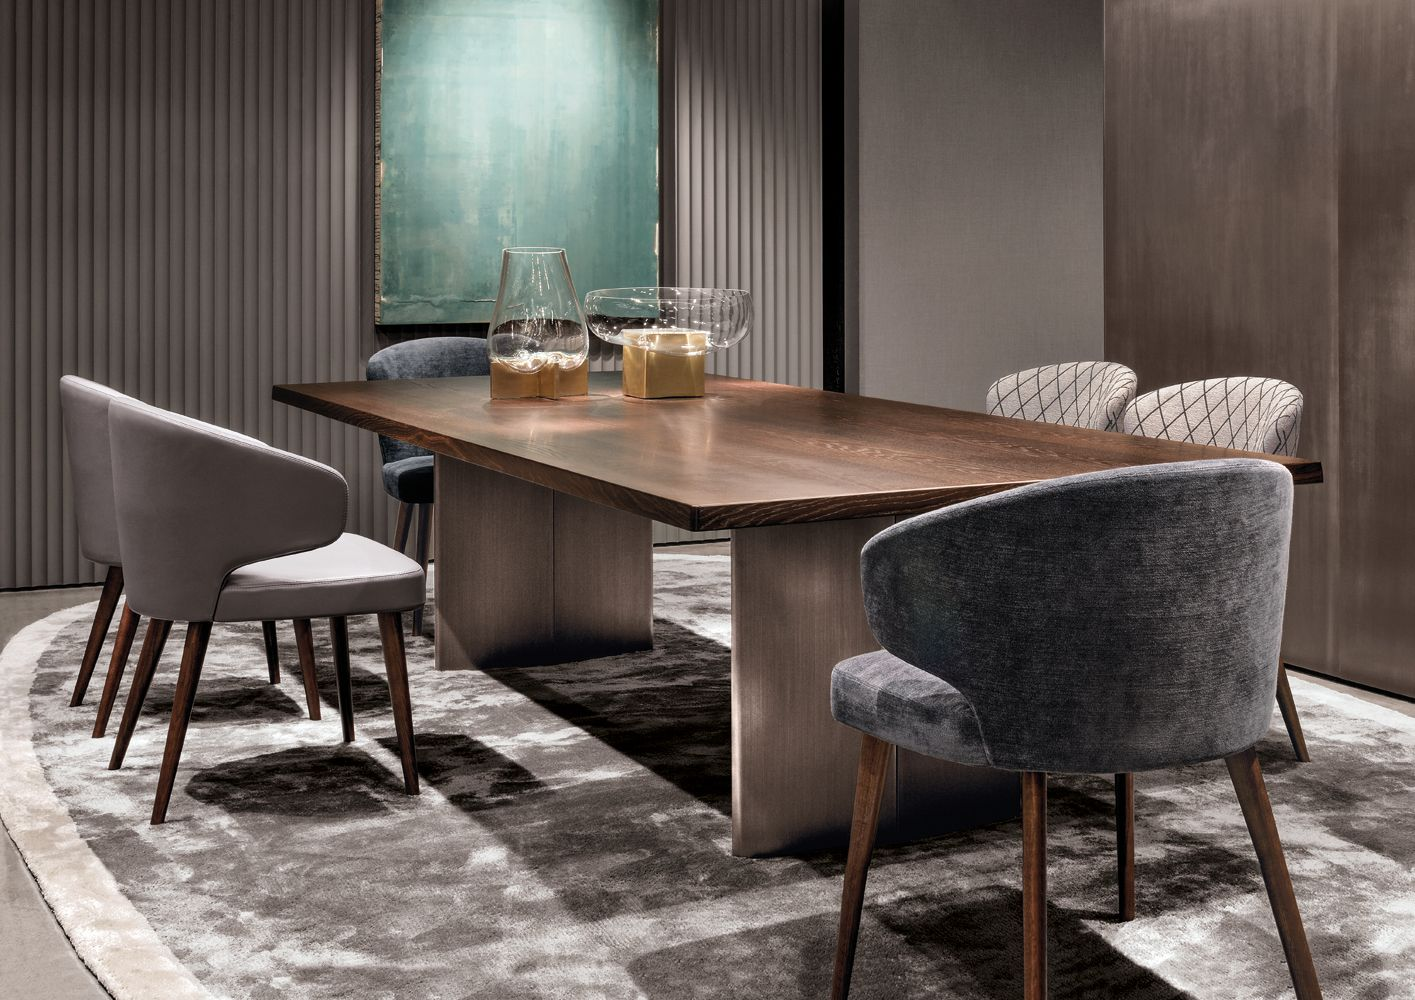 32 Stylish Dining Room Ideas To Impress Your Dinner Guests: Minotti Ipad - CHAIRS - EN